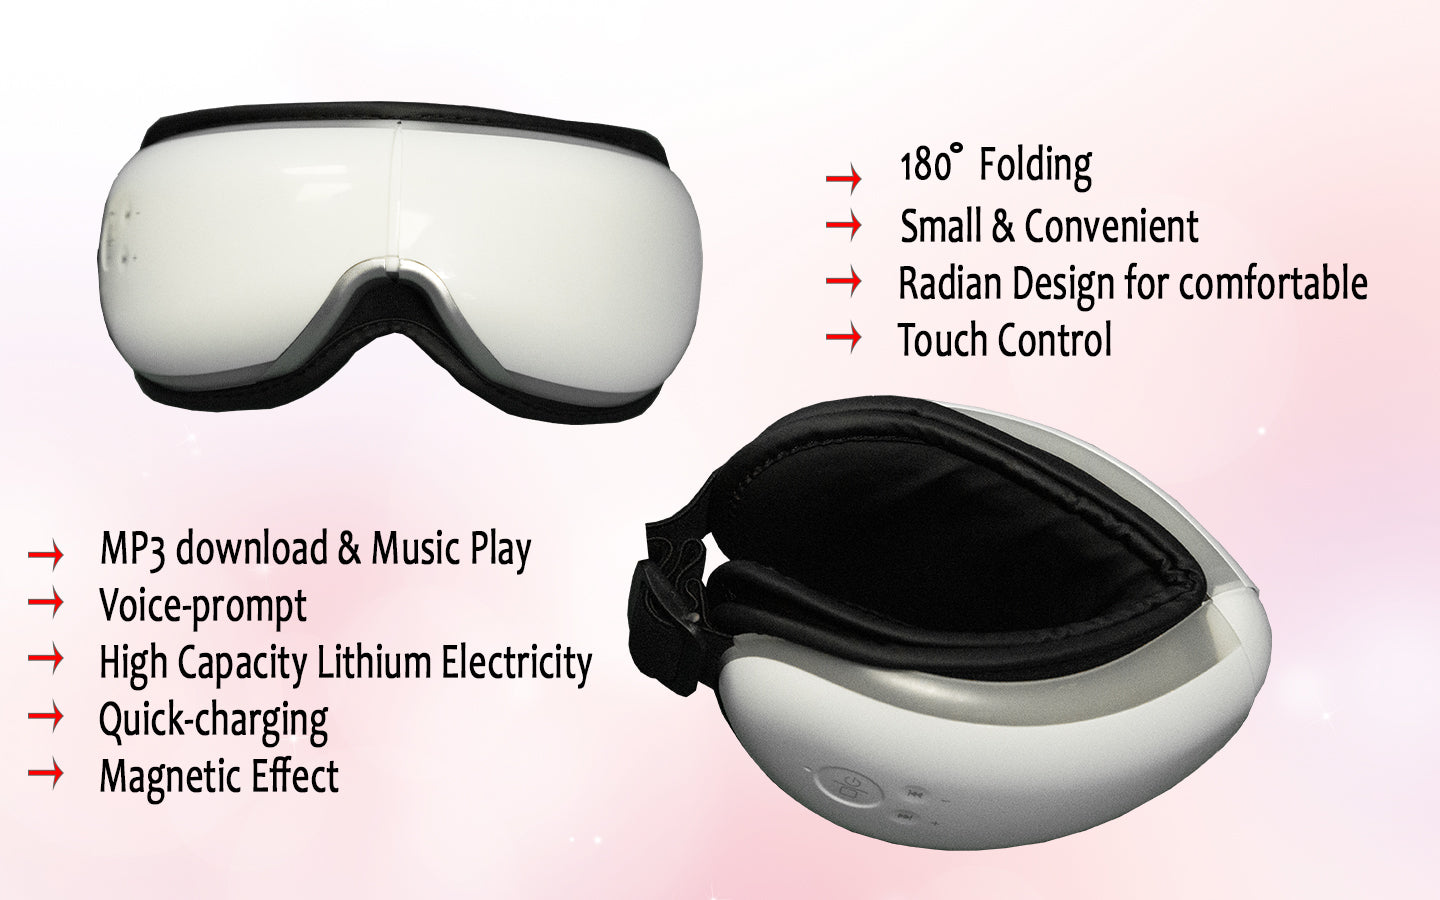 180° Folding, Radian design for comfortable, mp3 download & music play, voice-prompt, magnetic effect